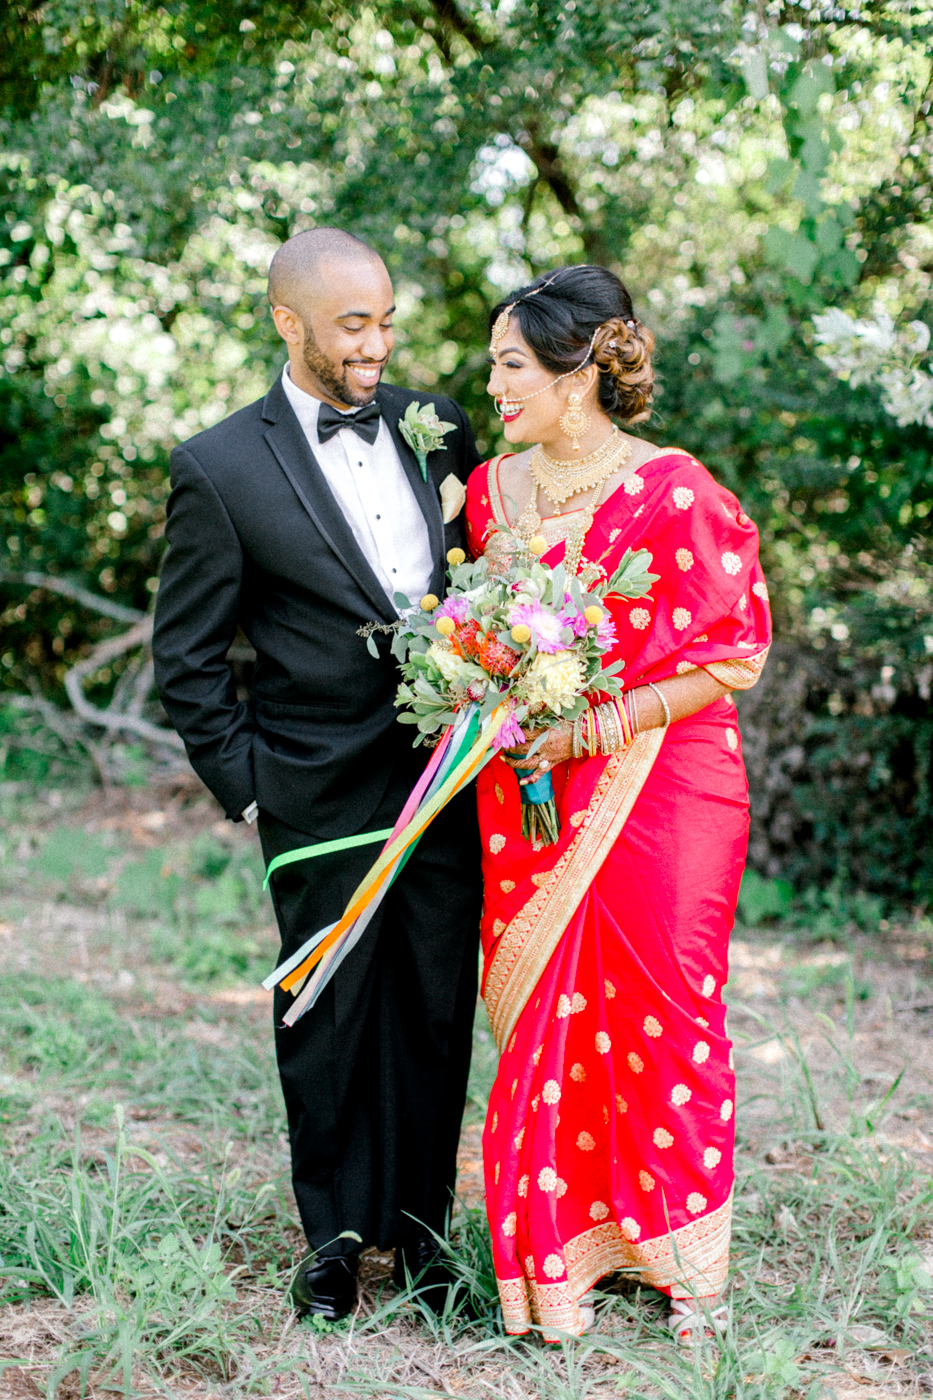 four corners photography atlanta wedding photographer indian wedding 550 trackside wedding atlanta indian wedding photographer (49 of 54).jpg